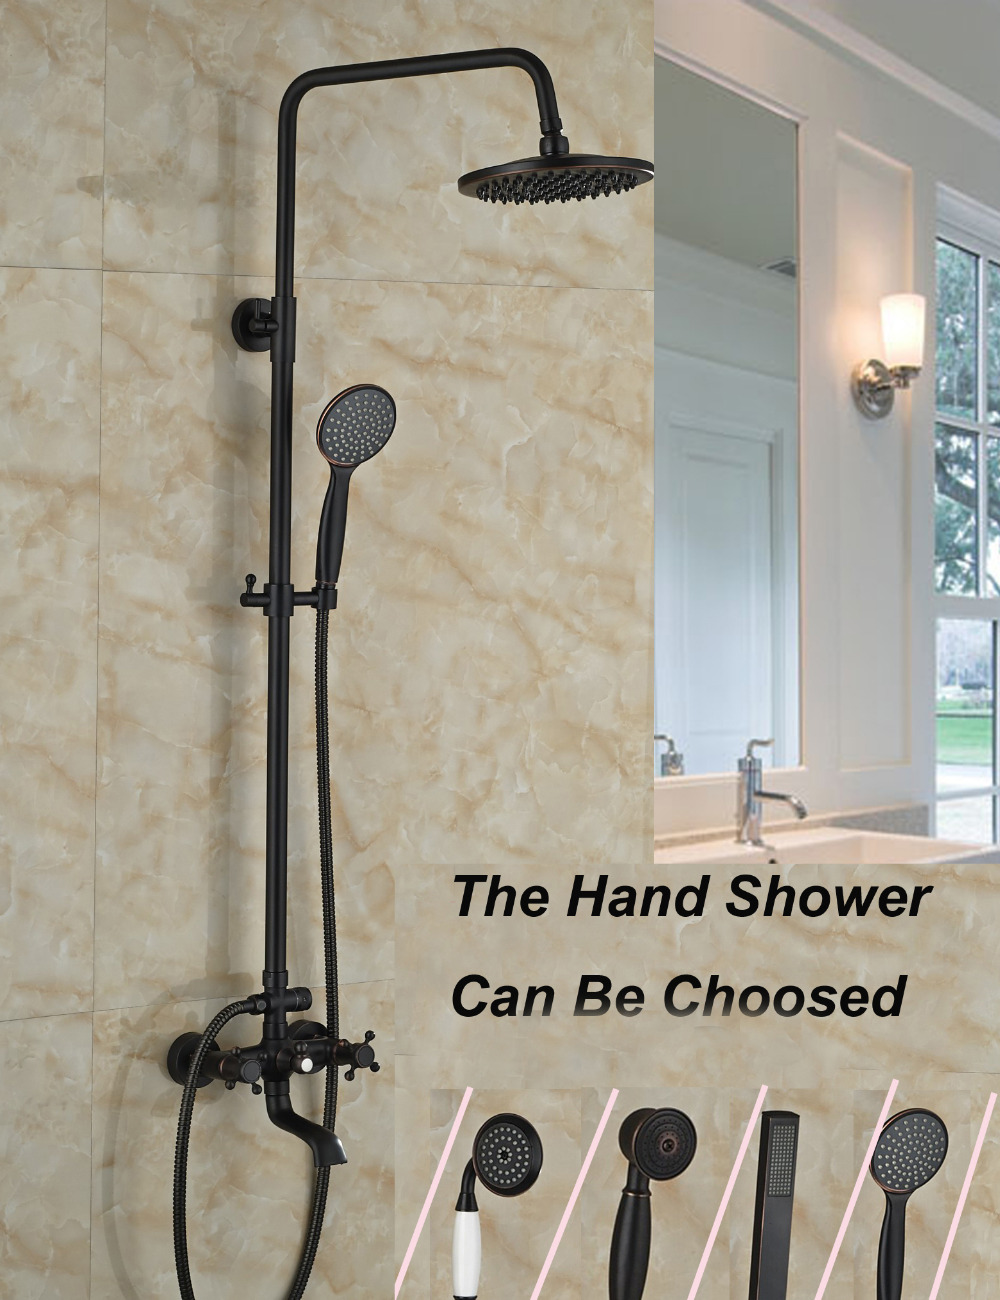 Led Square Rain Shower Head Oil Rubbed Bronze Shower Faucet Swivel Spout Tub Mixer Tap Single Handle Tap W/ Hand Shower Shower Equipment